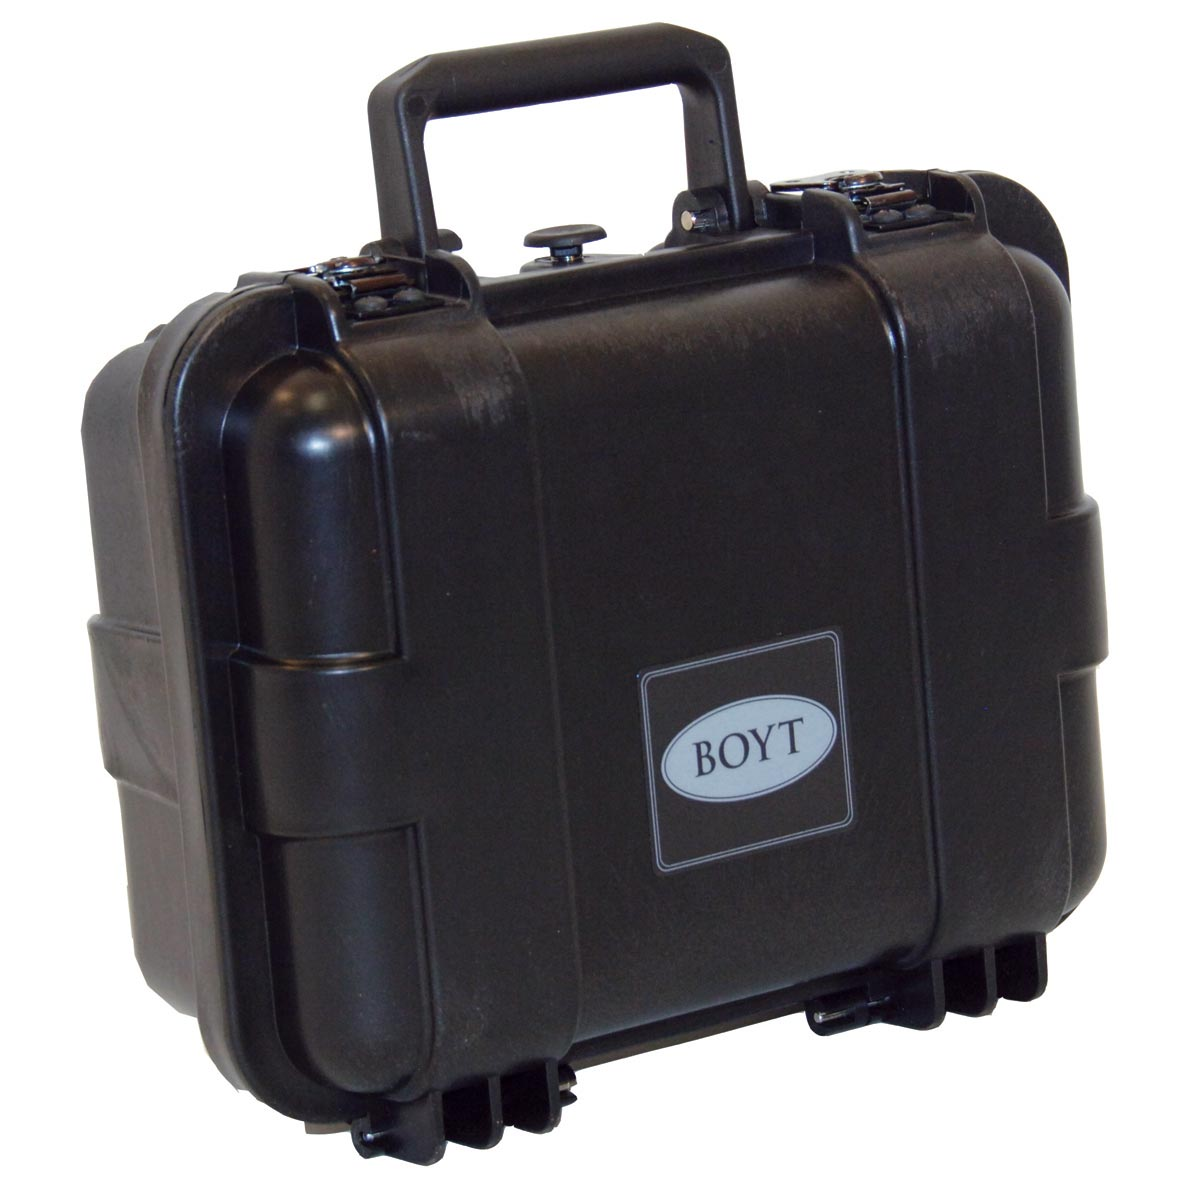 Boyt H-Series H11 Single Handgun/Accessory/Ammo Case